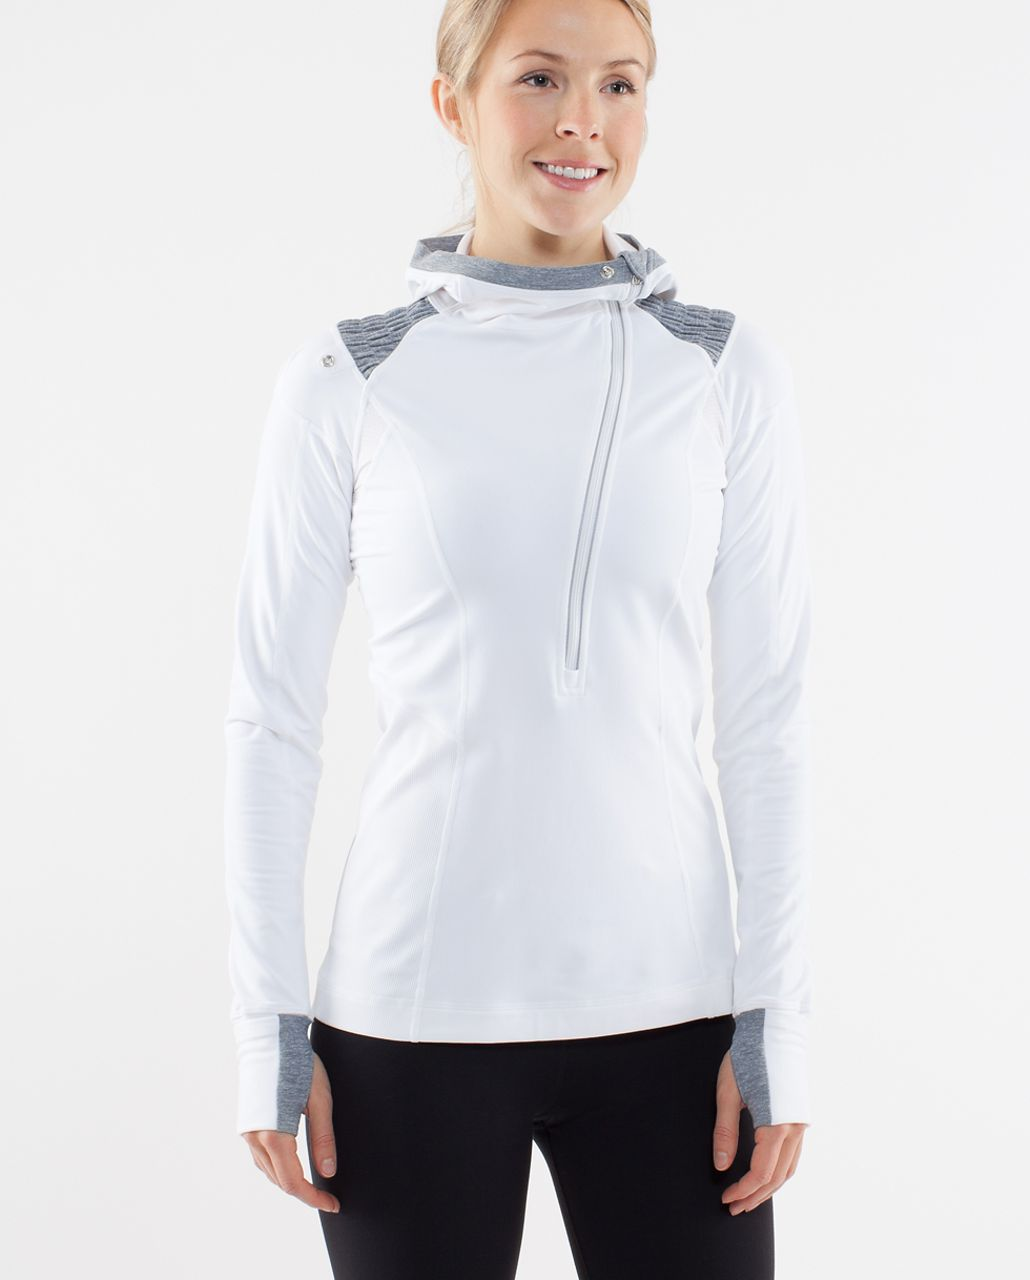 Lululemon Run:  For It Pullover - White /  Heathered Blurred Grey